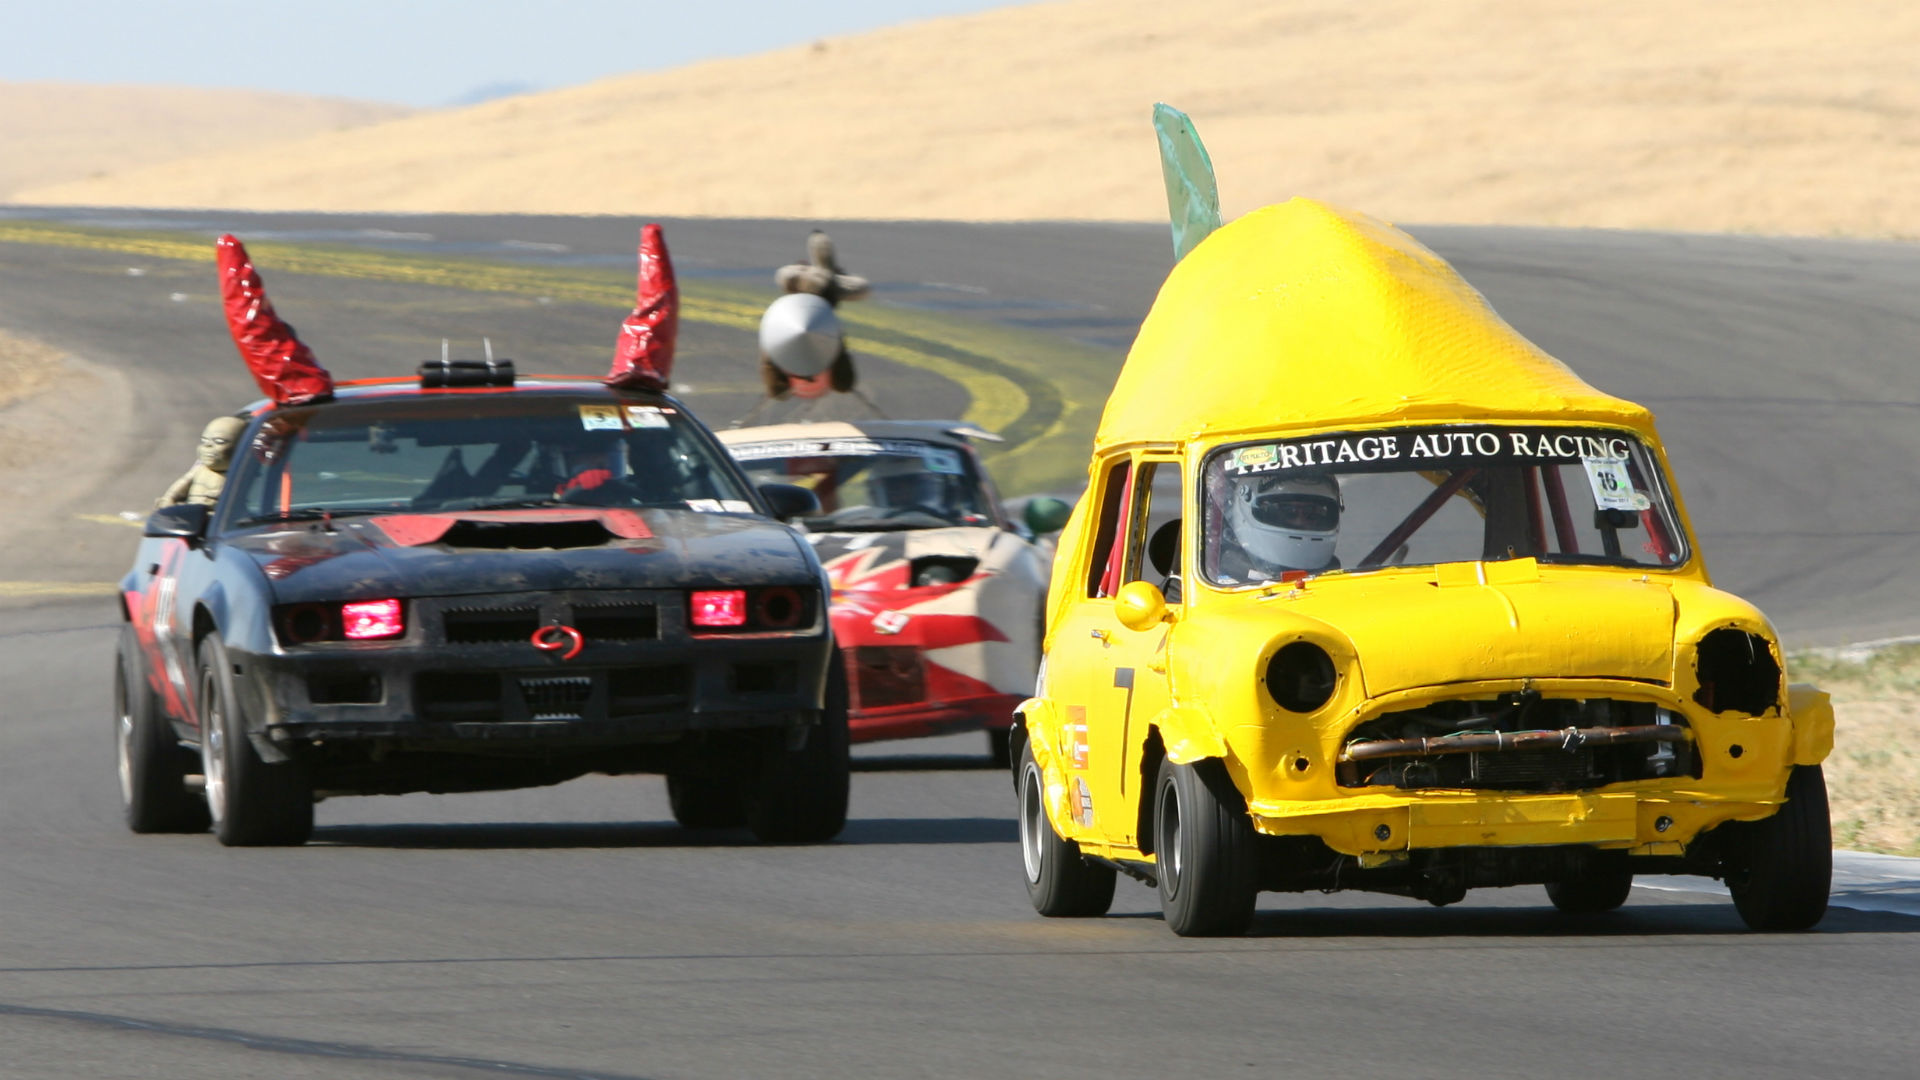 24 Hours Of Lemons >> 24 Hours Of Lemons Is Like The 24 Hours Of Le Mans Just Funnier